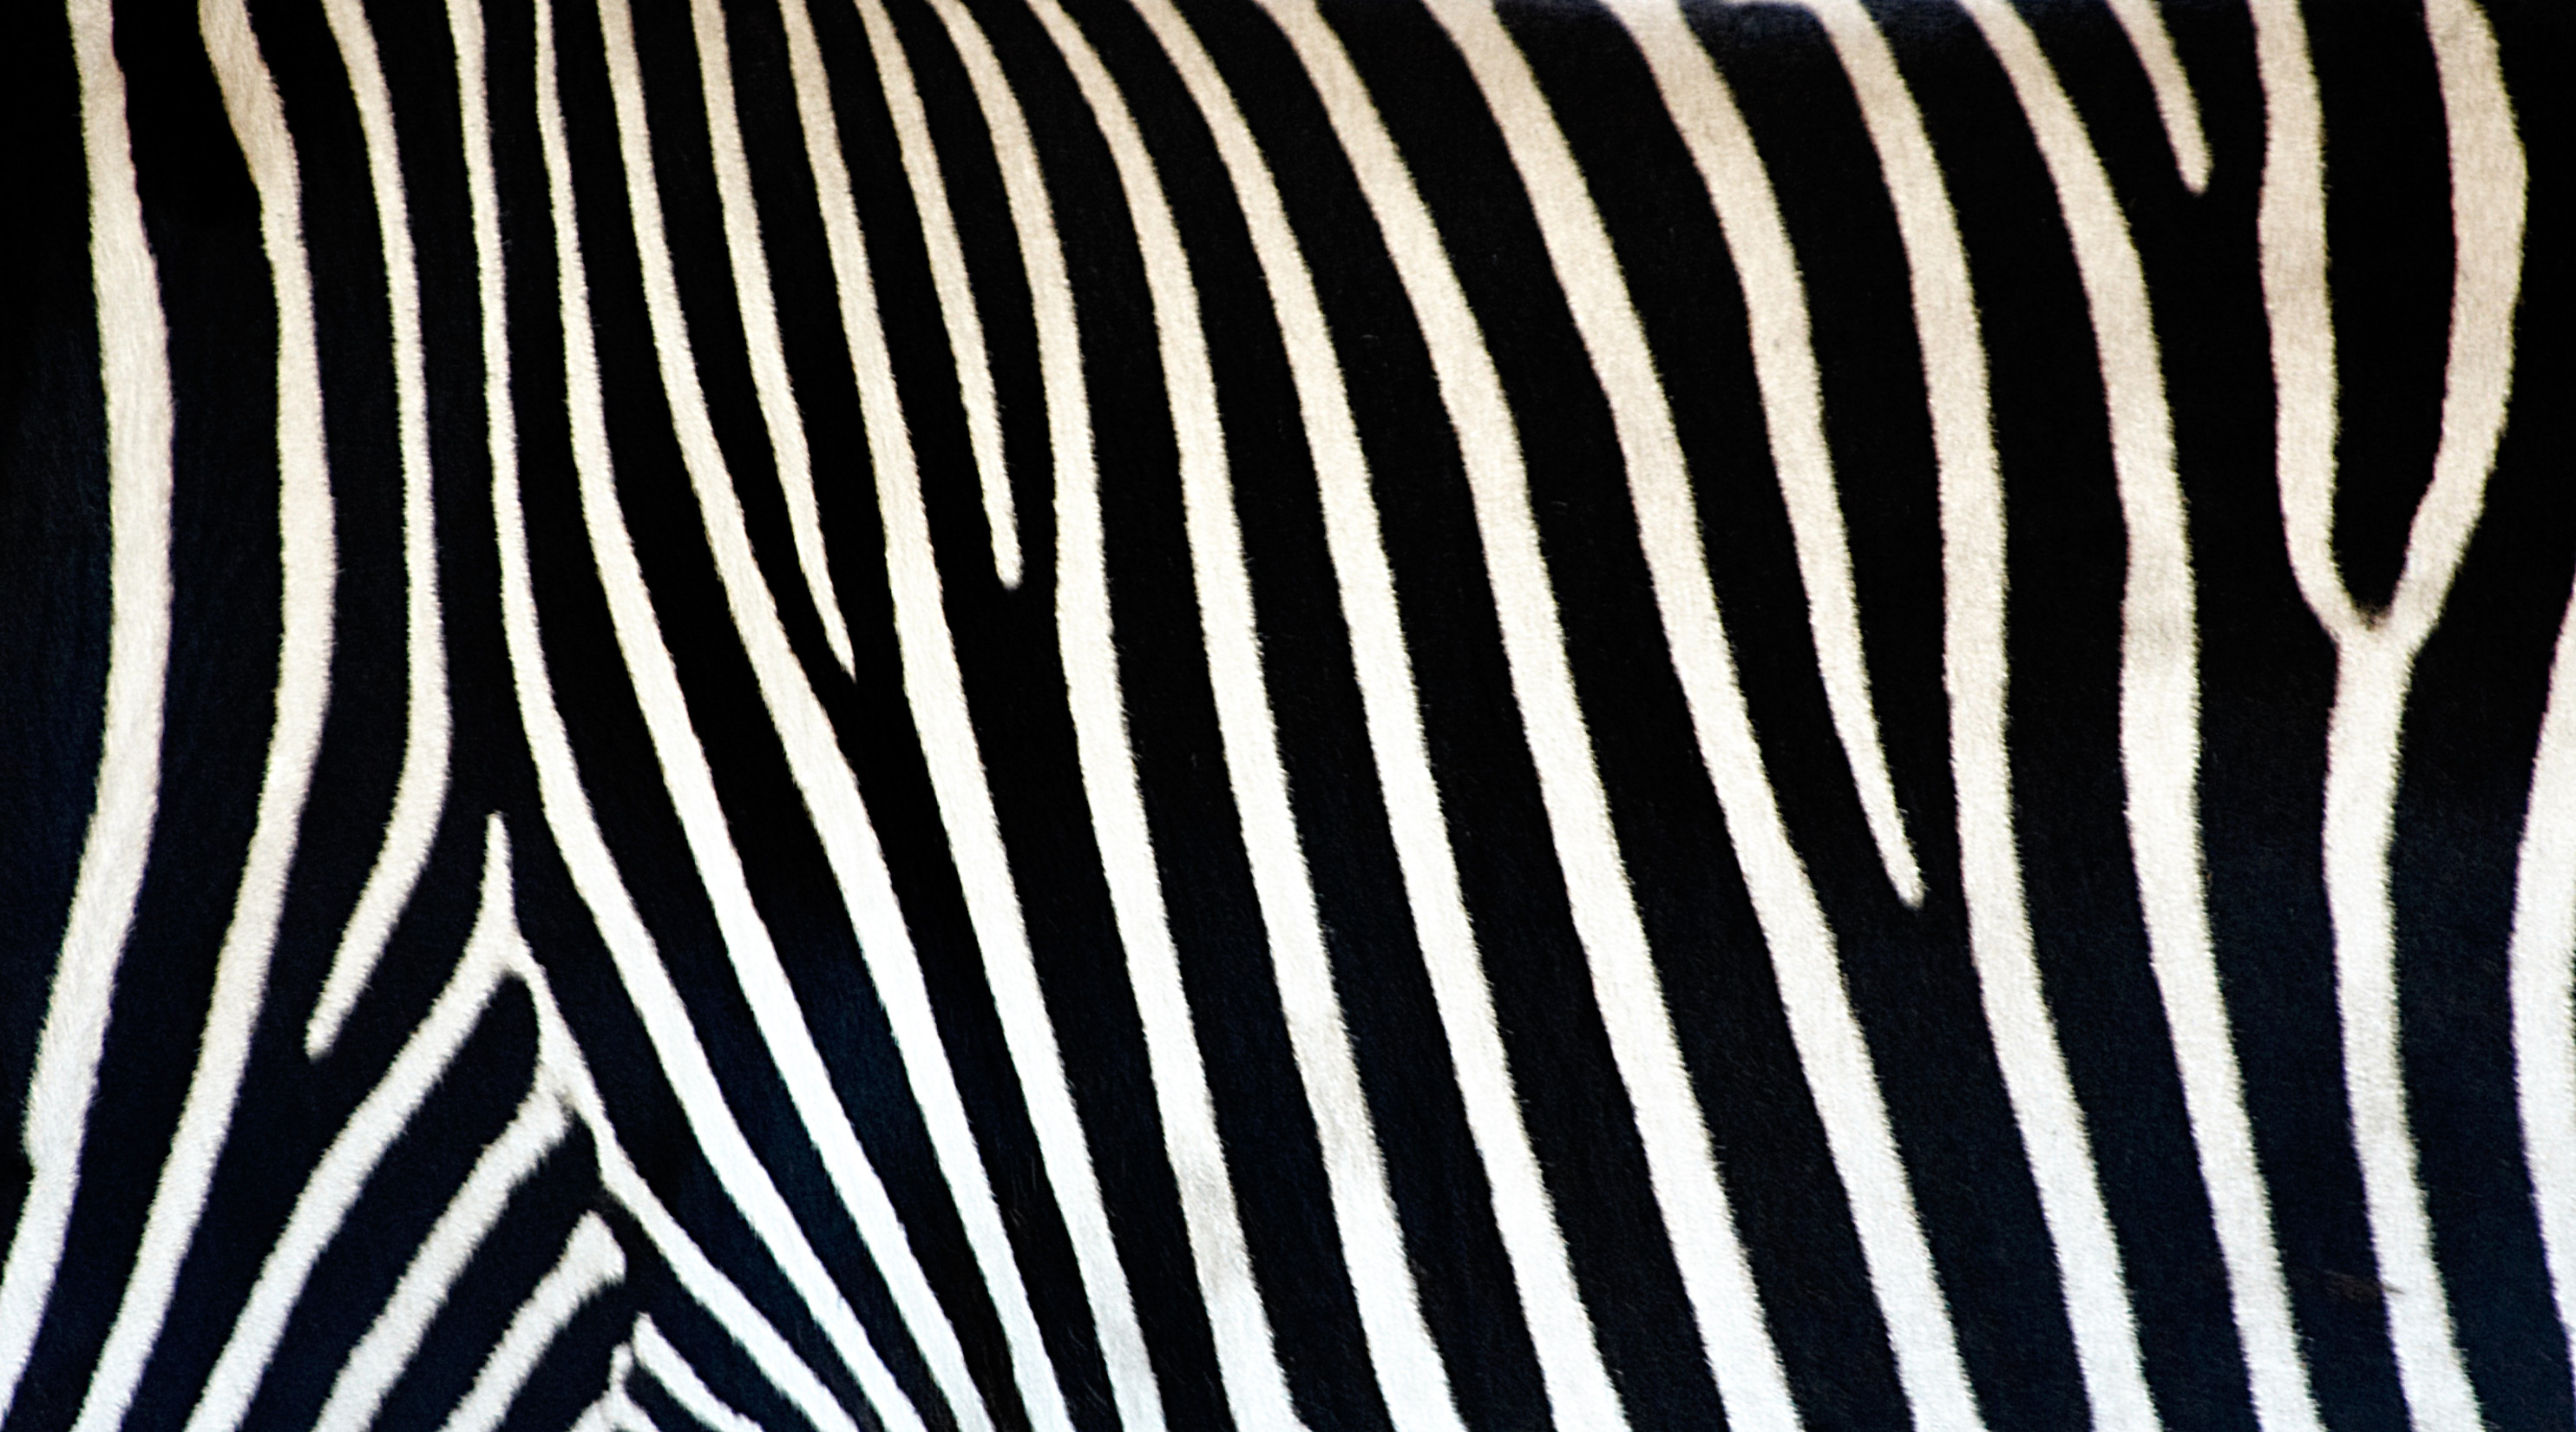 zebra stripe wallpaper stuff - photo #33